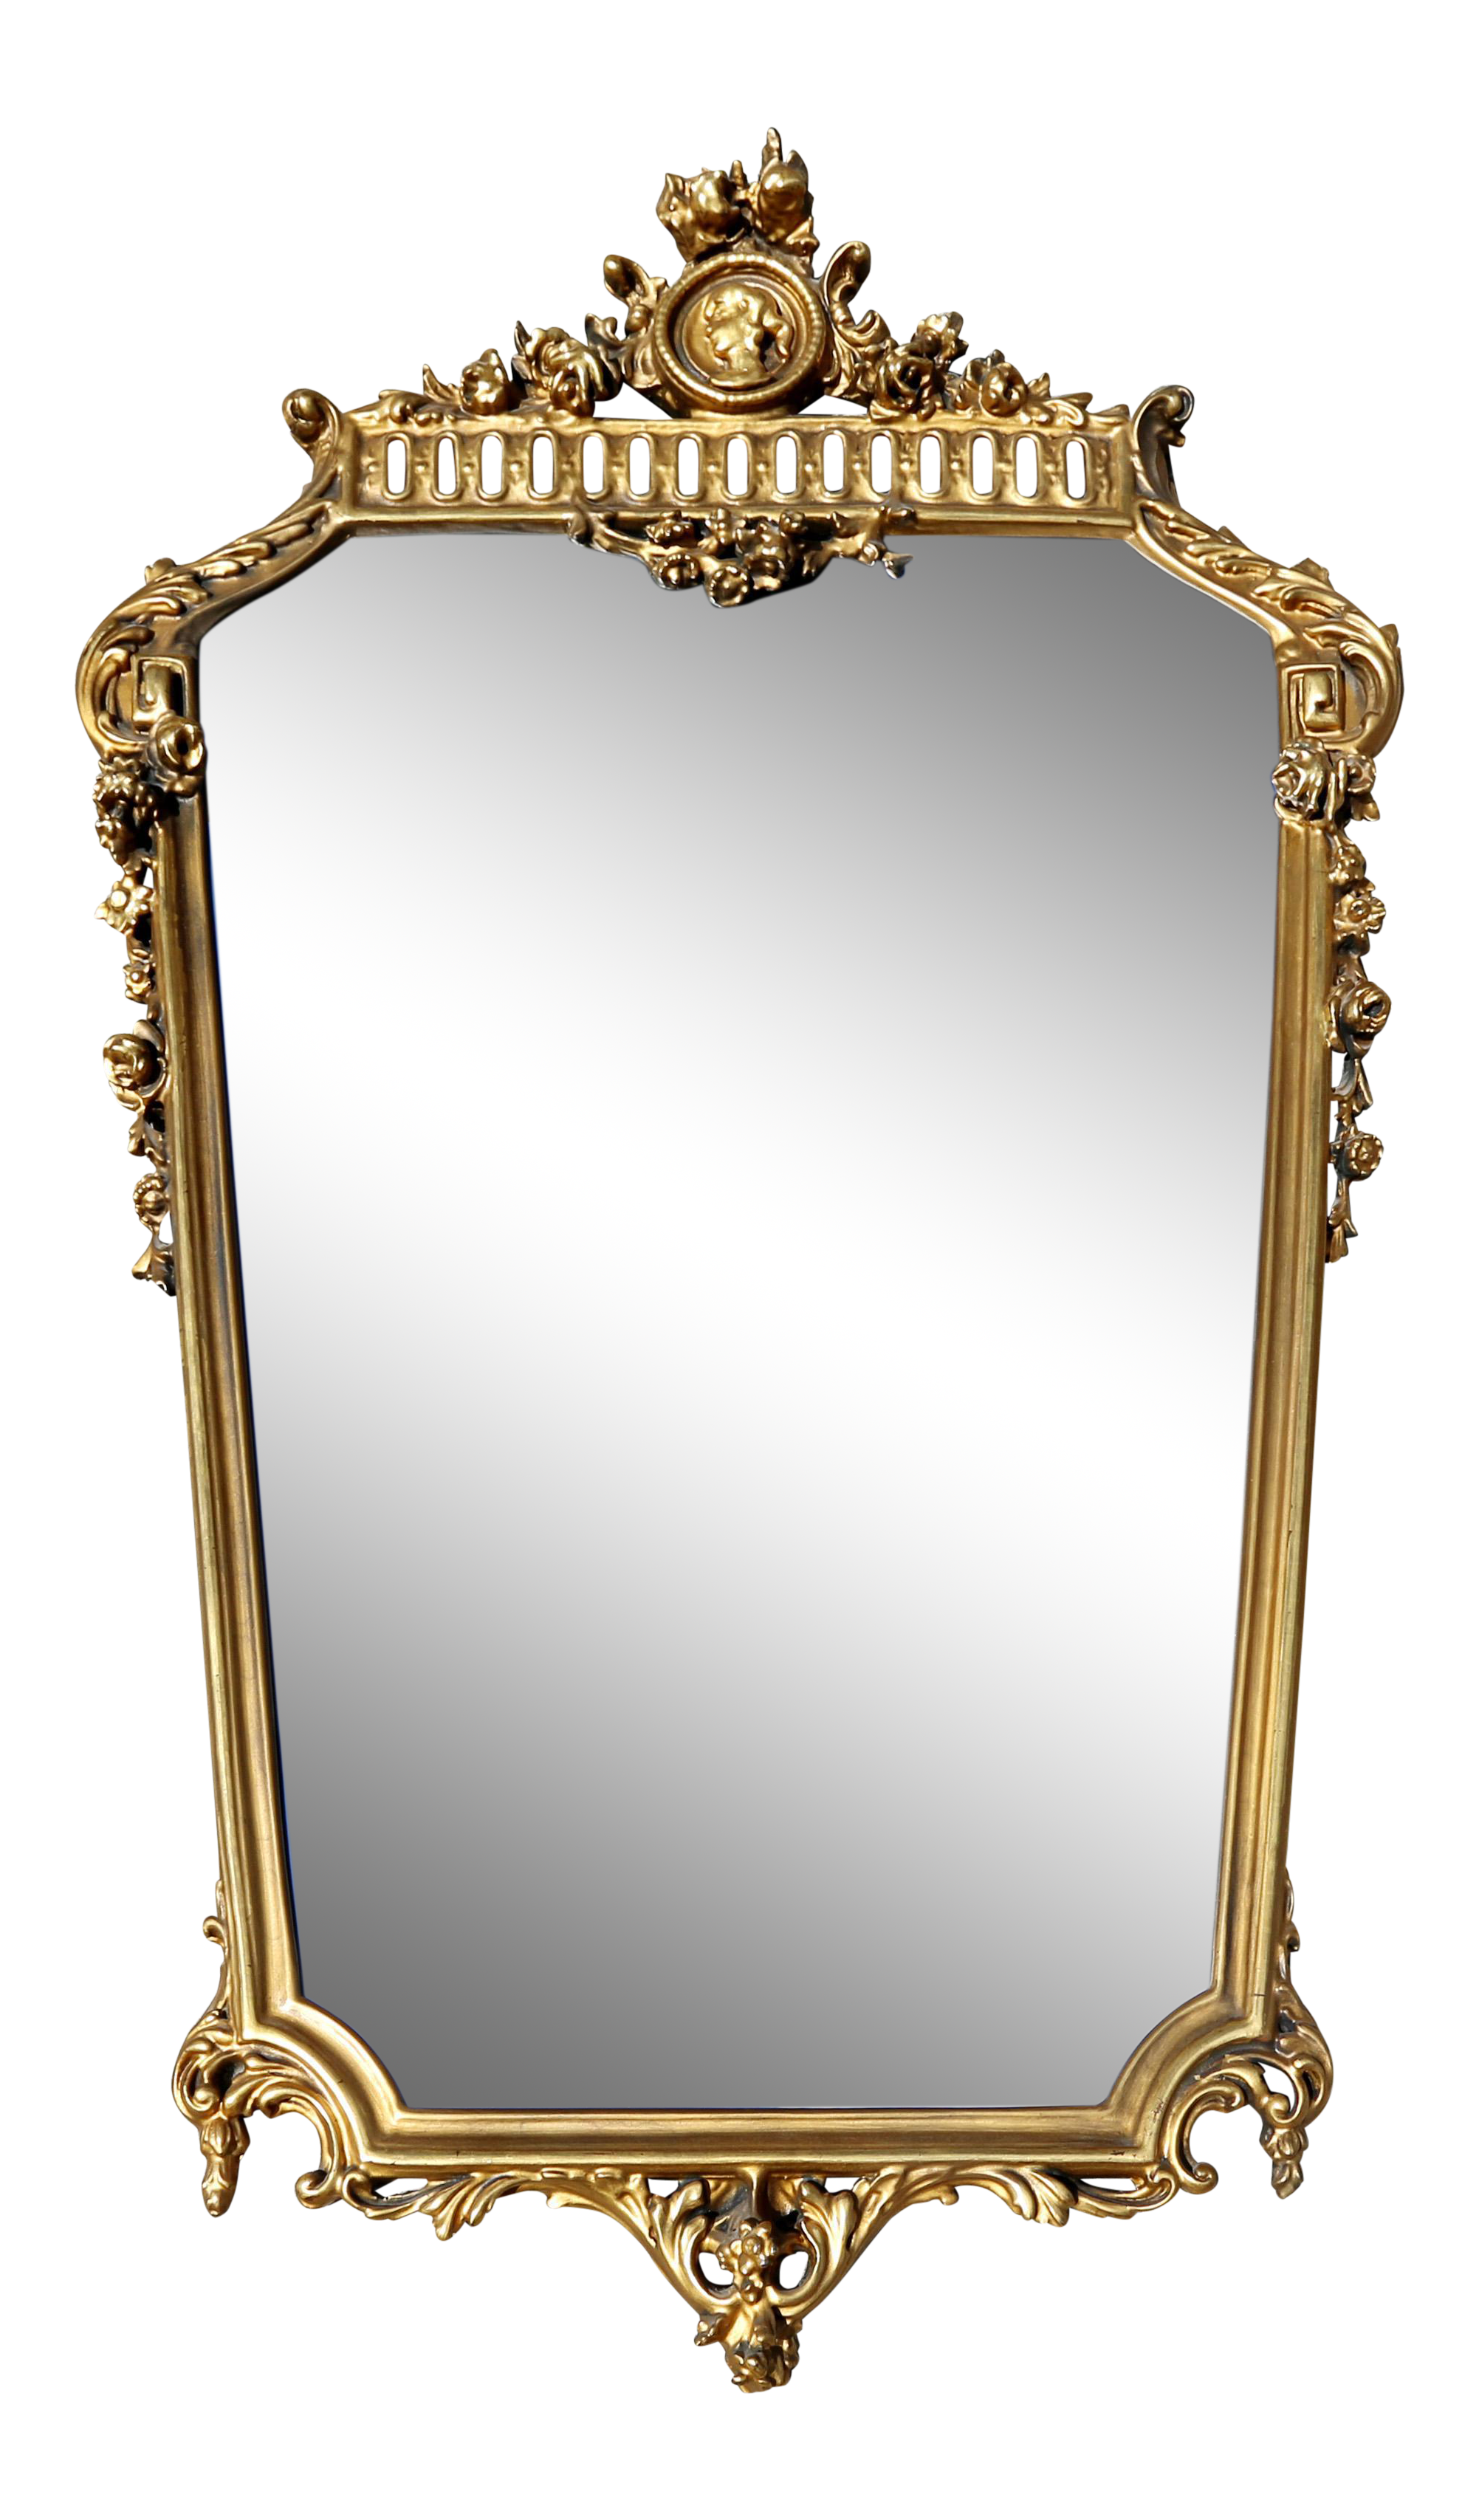 Vintage Tapered Gold Gilt Cameo Mirror On Chairish Com Antique Mirror Frame Mirror Gilt Mirror